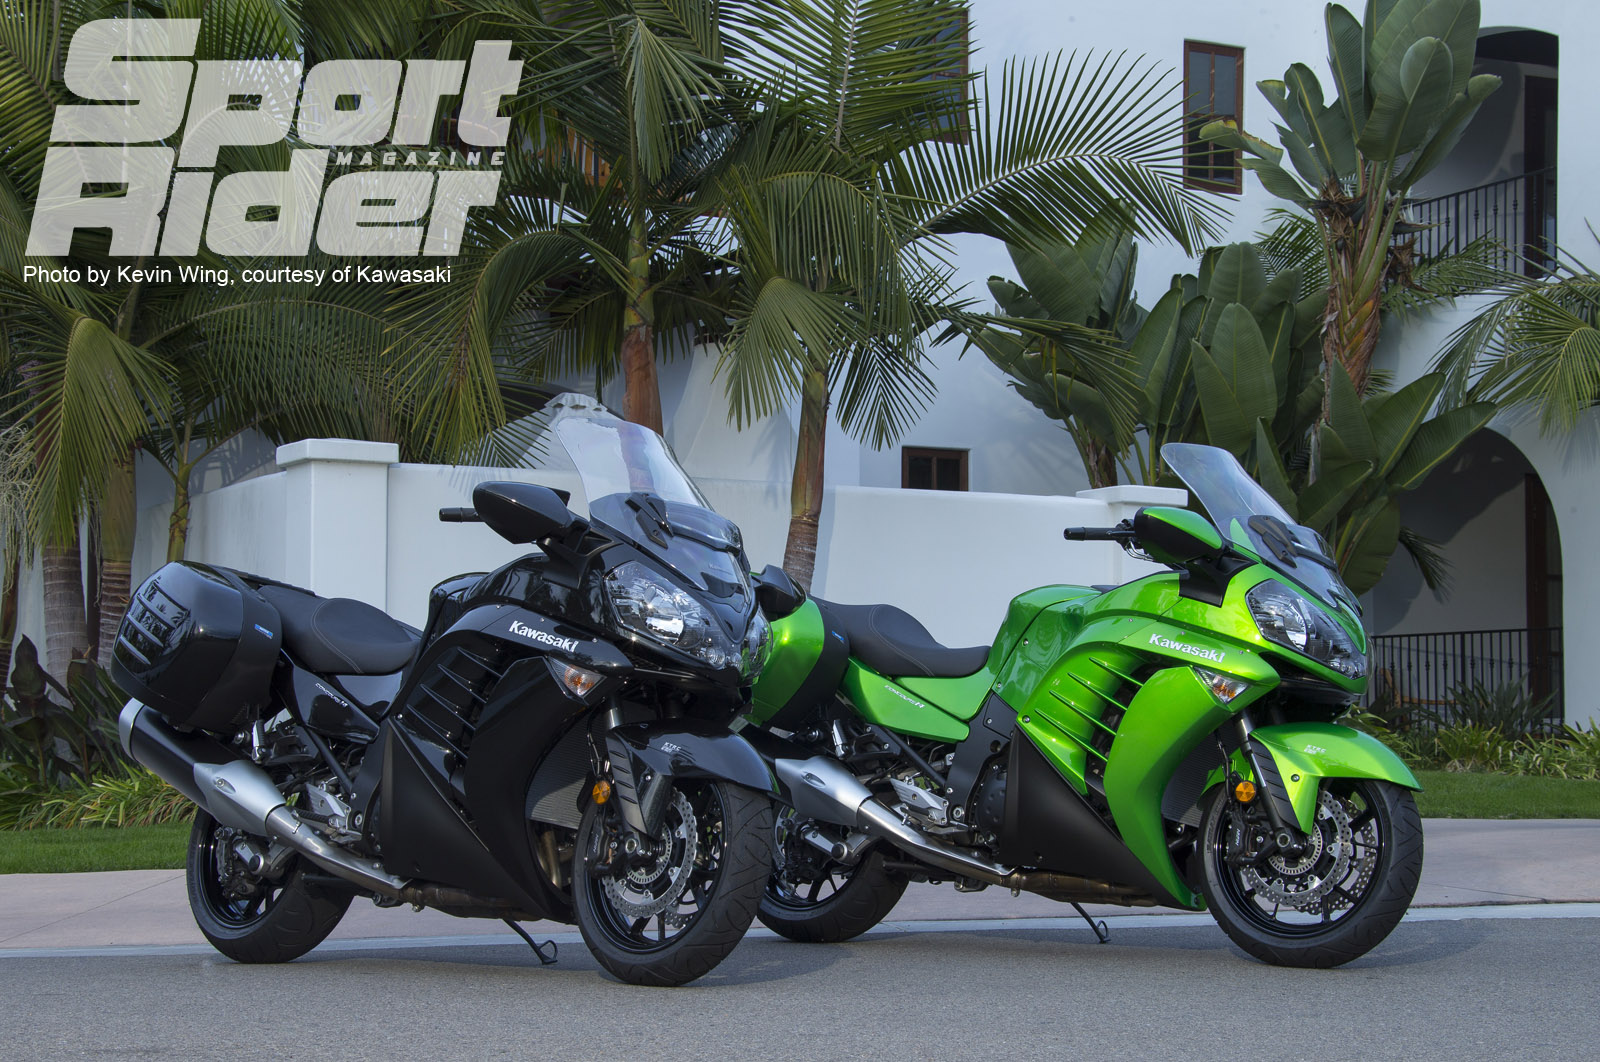 First Ride Review: 2015 Kawasaki Concours 14 | Cycle World